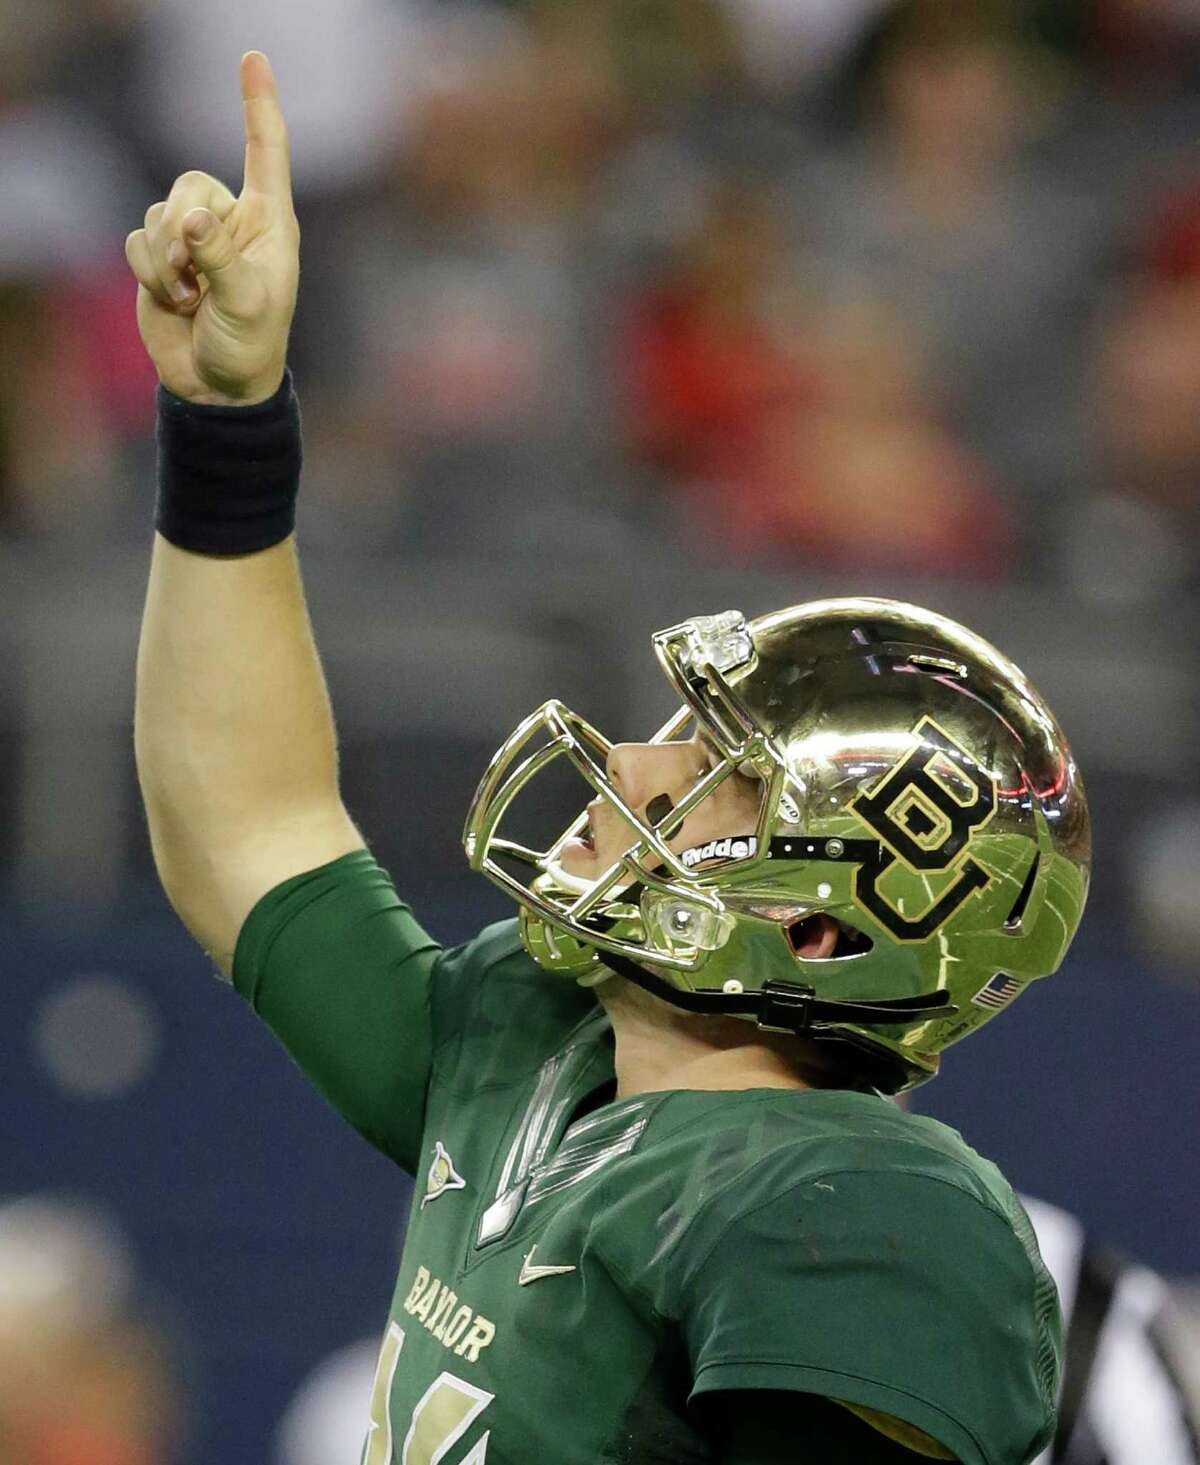 Baylor quarterback Bryce Petty points to the sky after his team scored a touchdown against Baylor during the second half of an NCAA college football game in Arlington, Texas, Saturday, Nov. 16, 2013. Baylor won 63-38. (AP Photo/LM Otero)